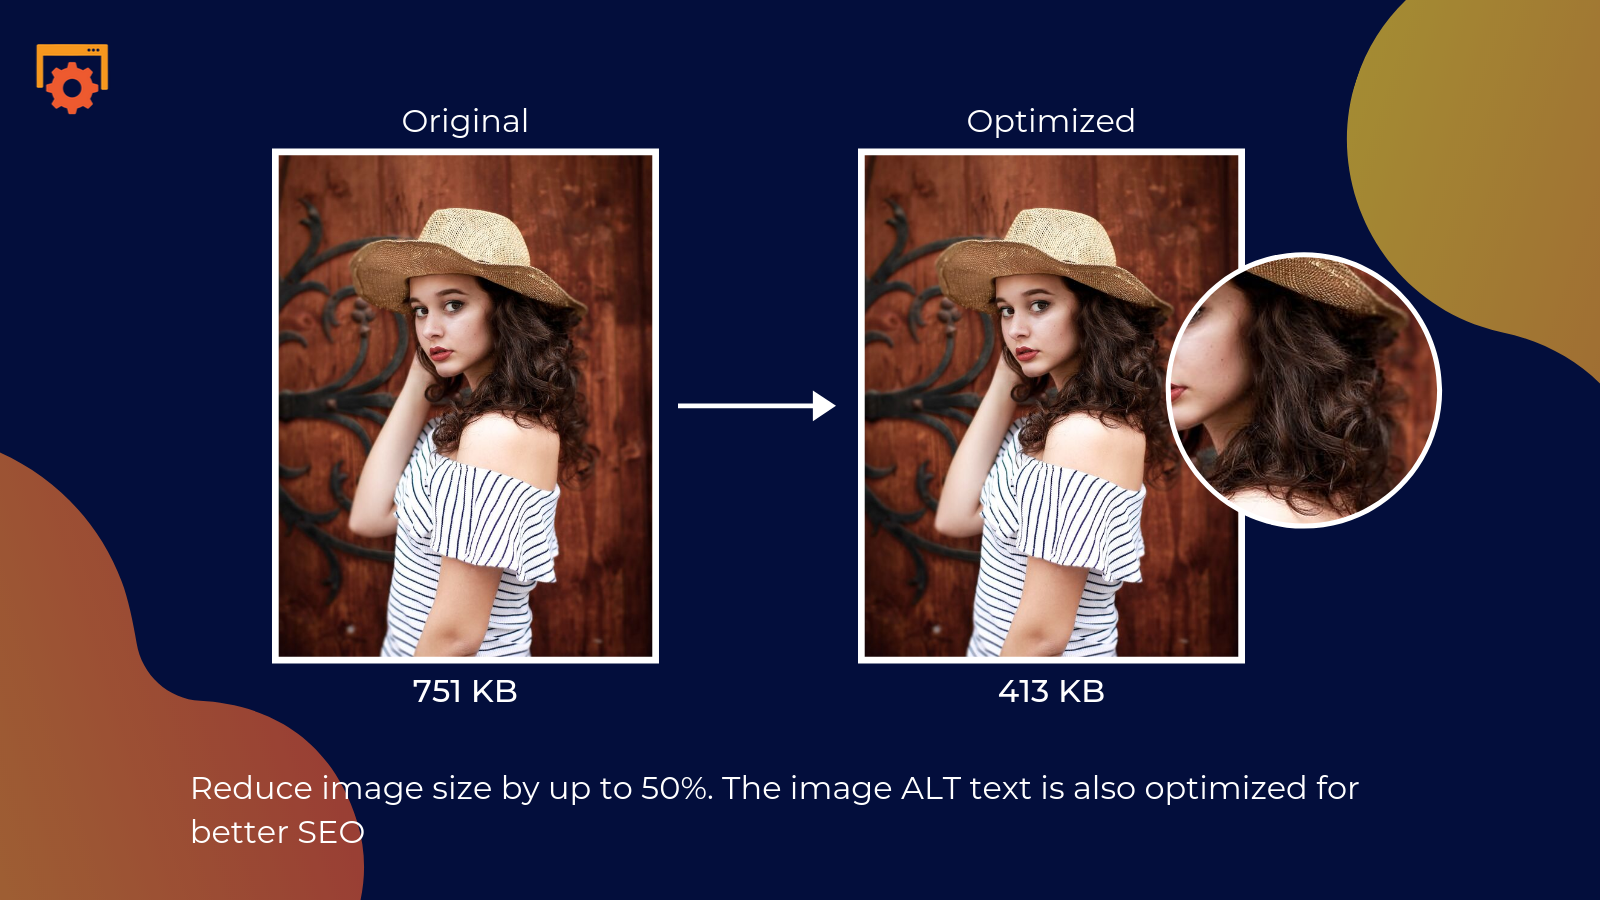 shopify smart image optimizer app by Secomapp - Reduce image size by up to 50%